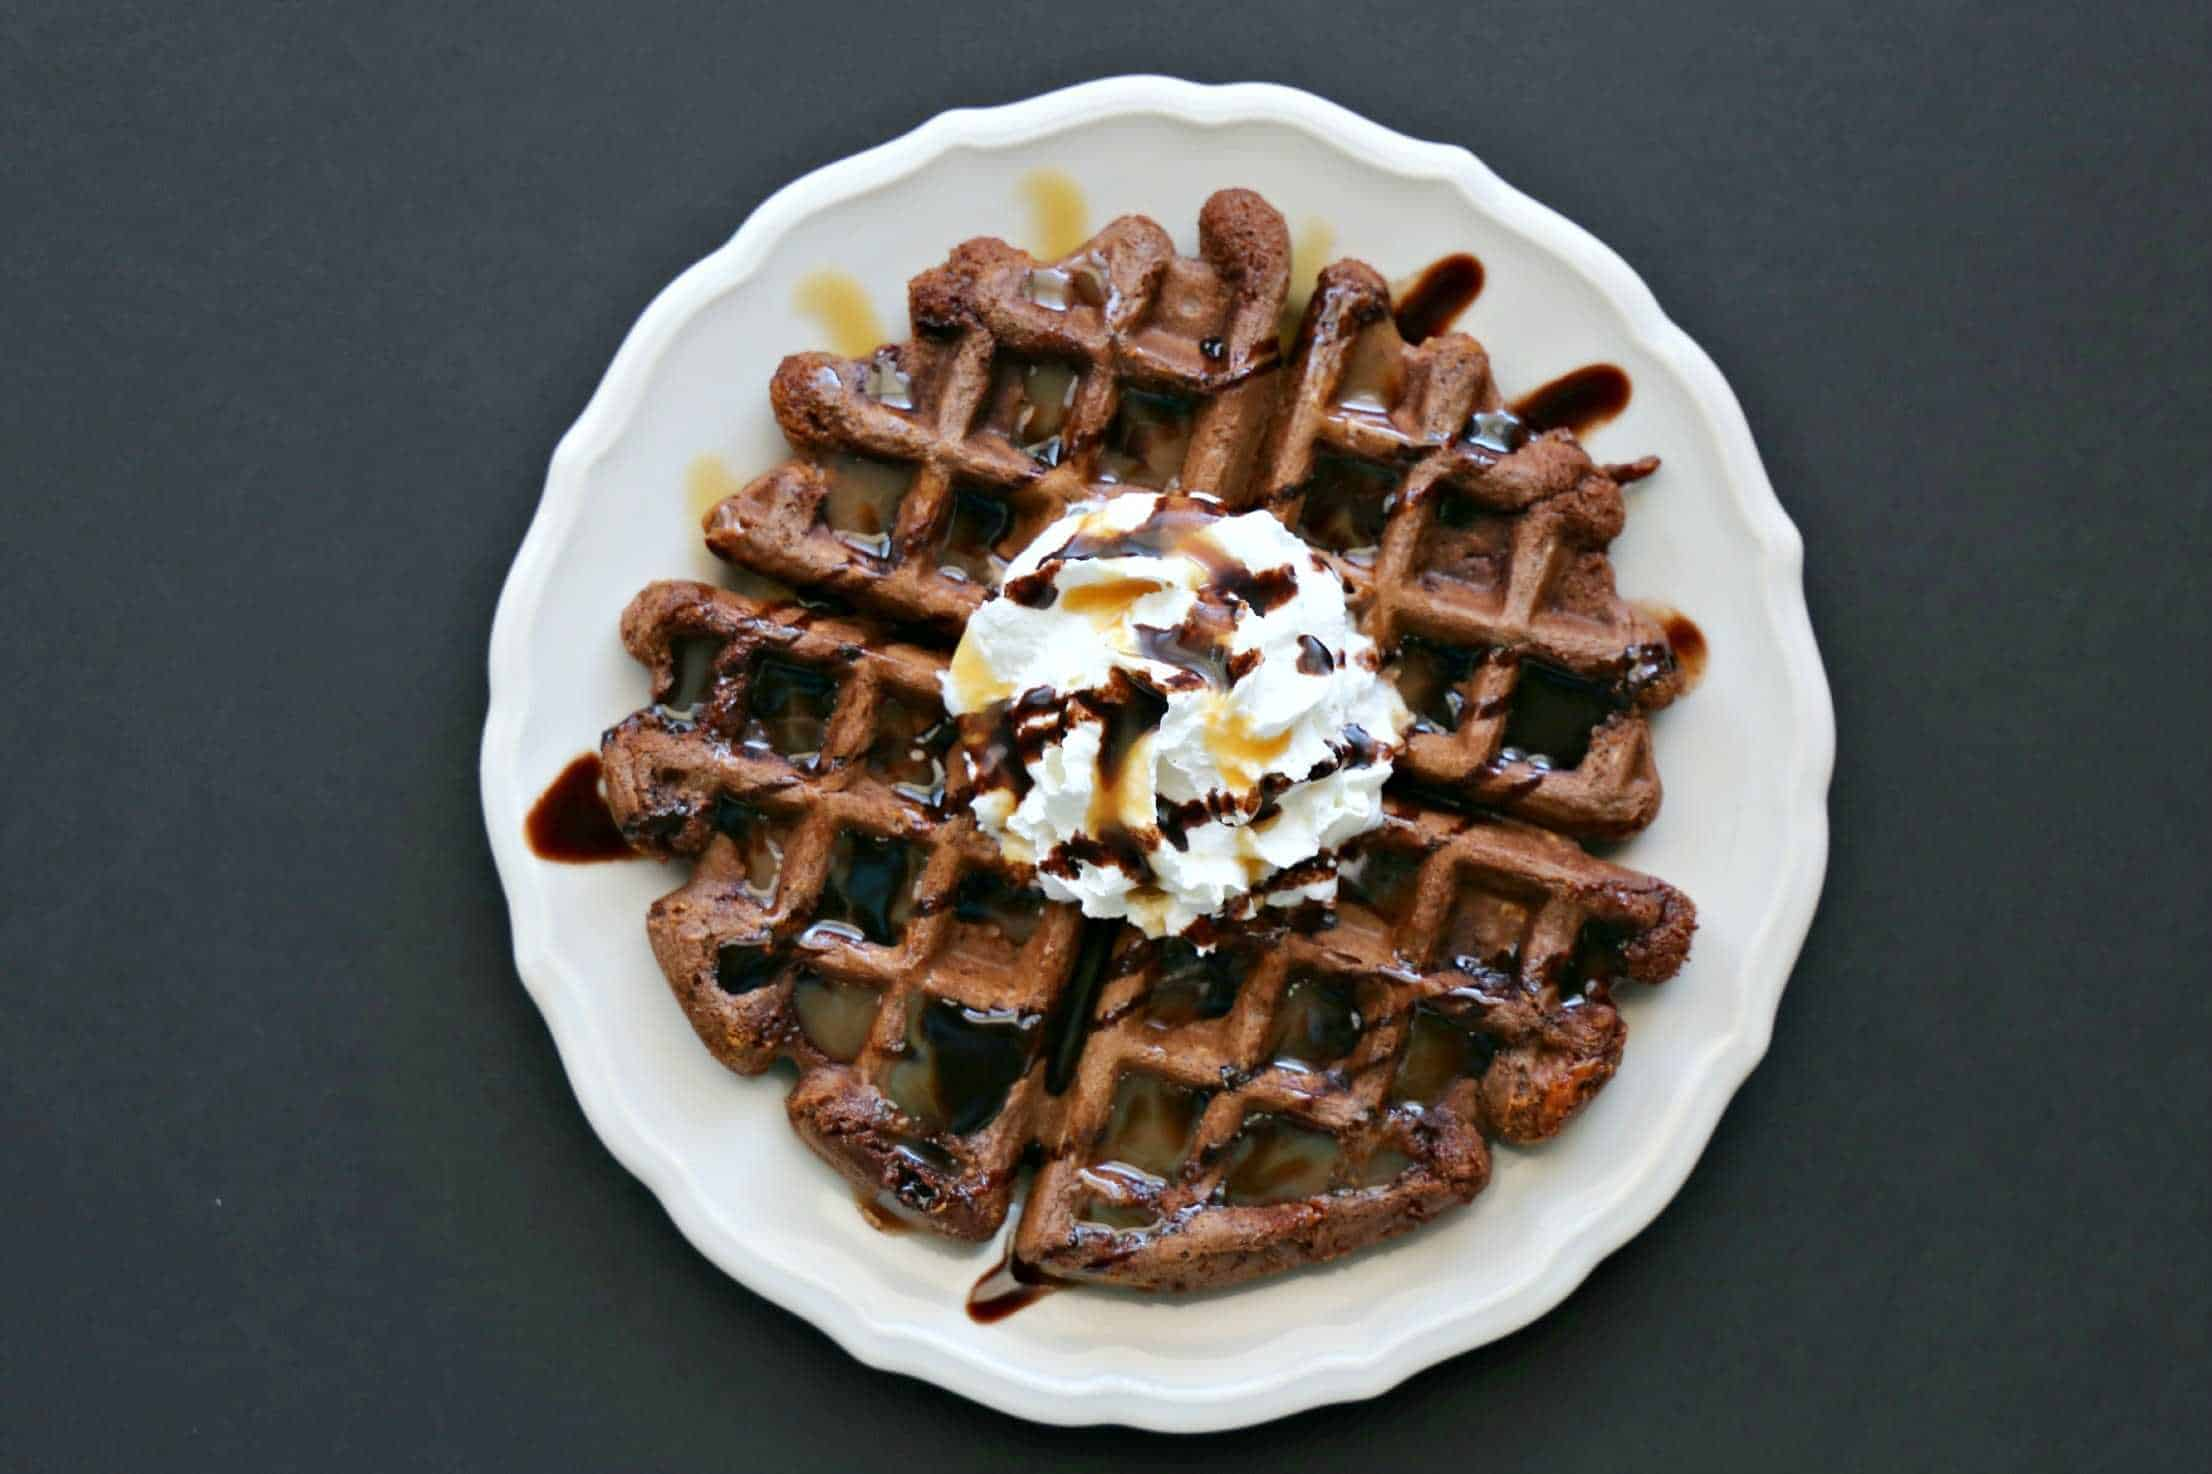 plate with chocolate waffle with Butterfinger pieces